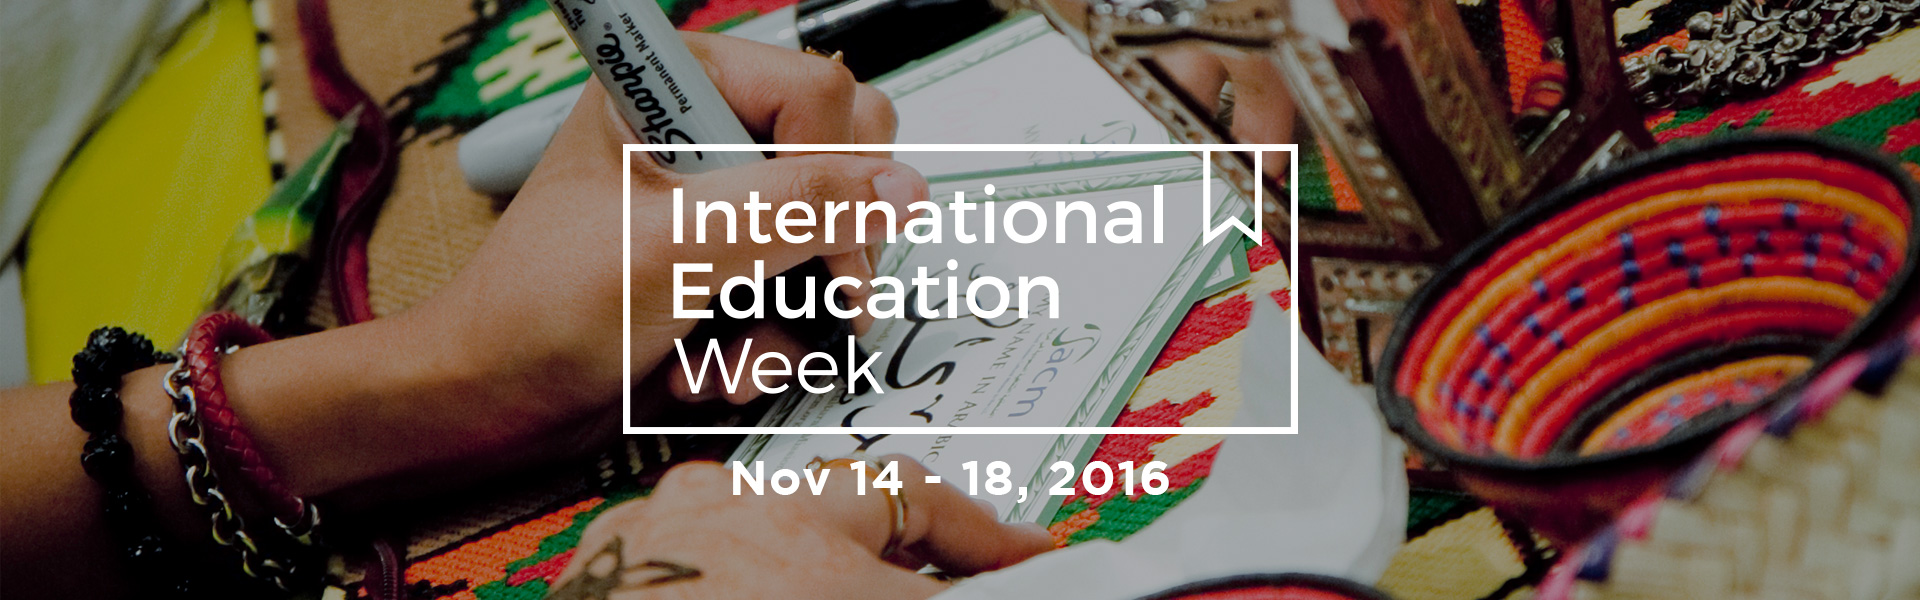 IEW-2016_Web-Banner_Main-Page